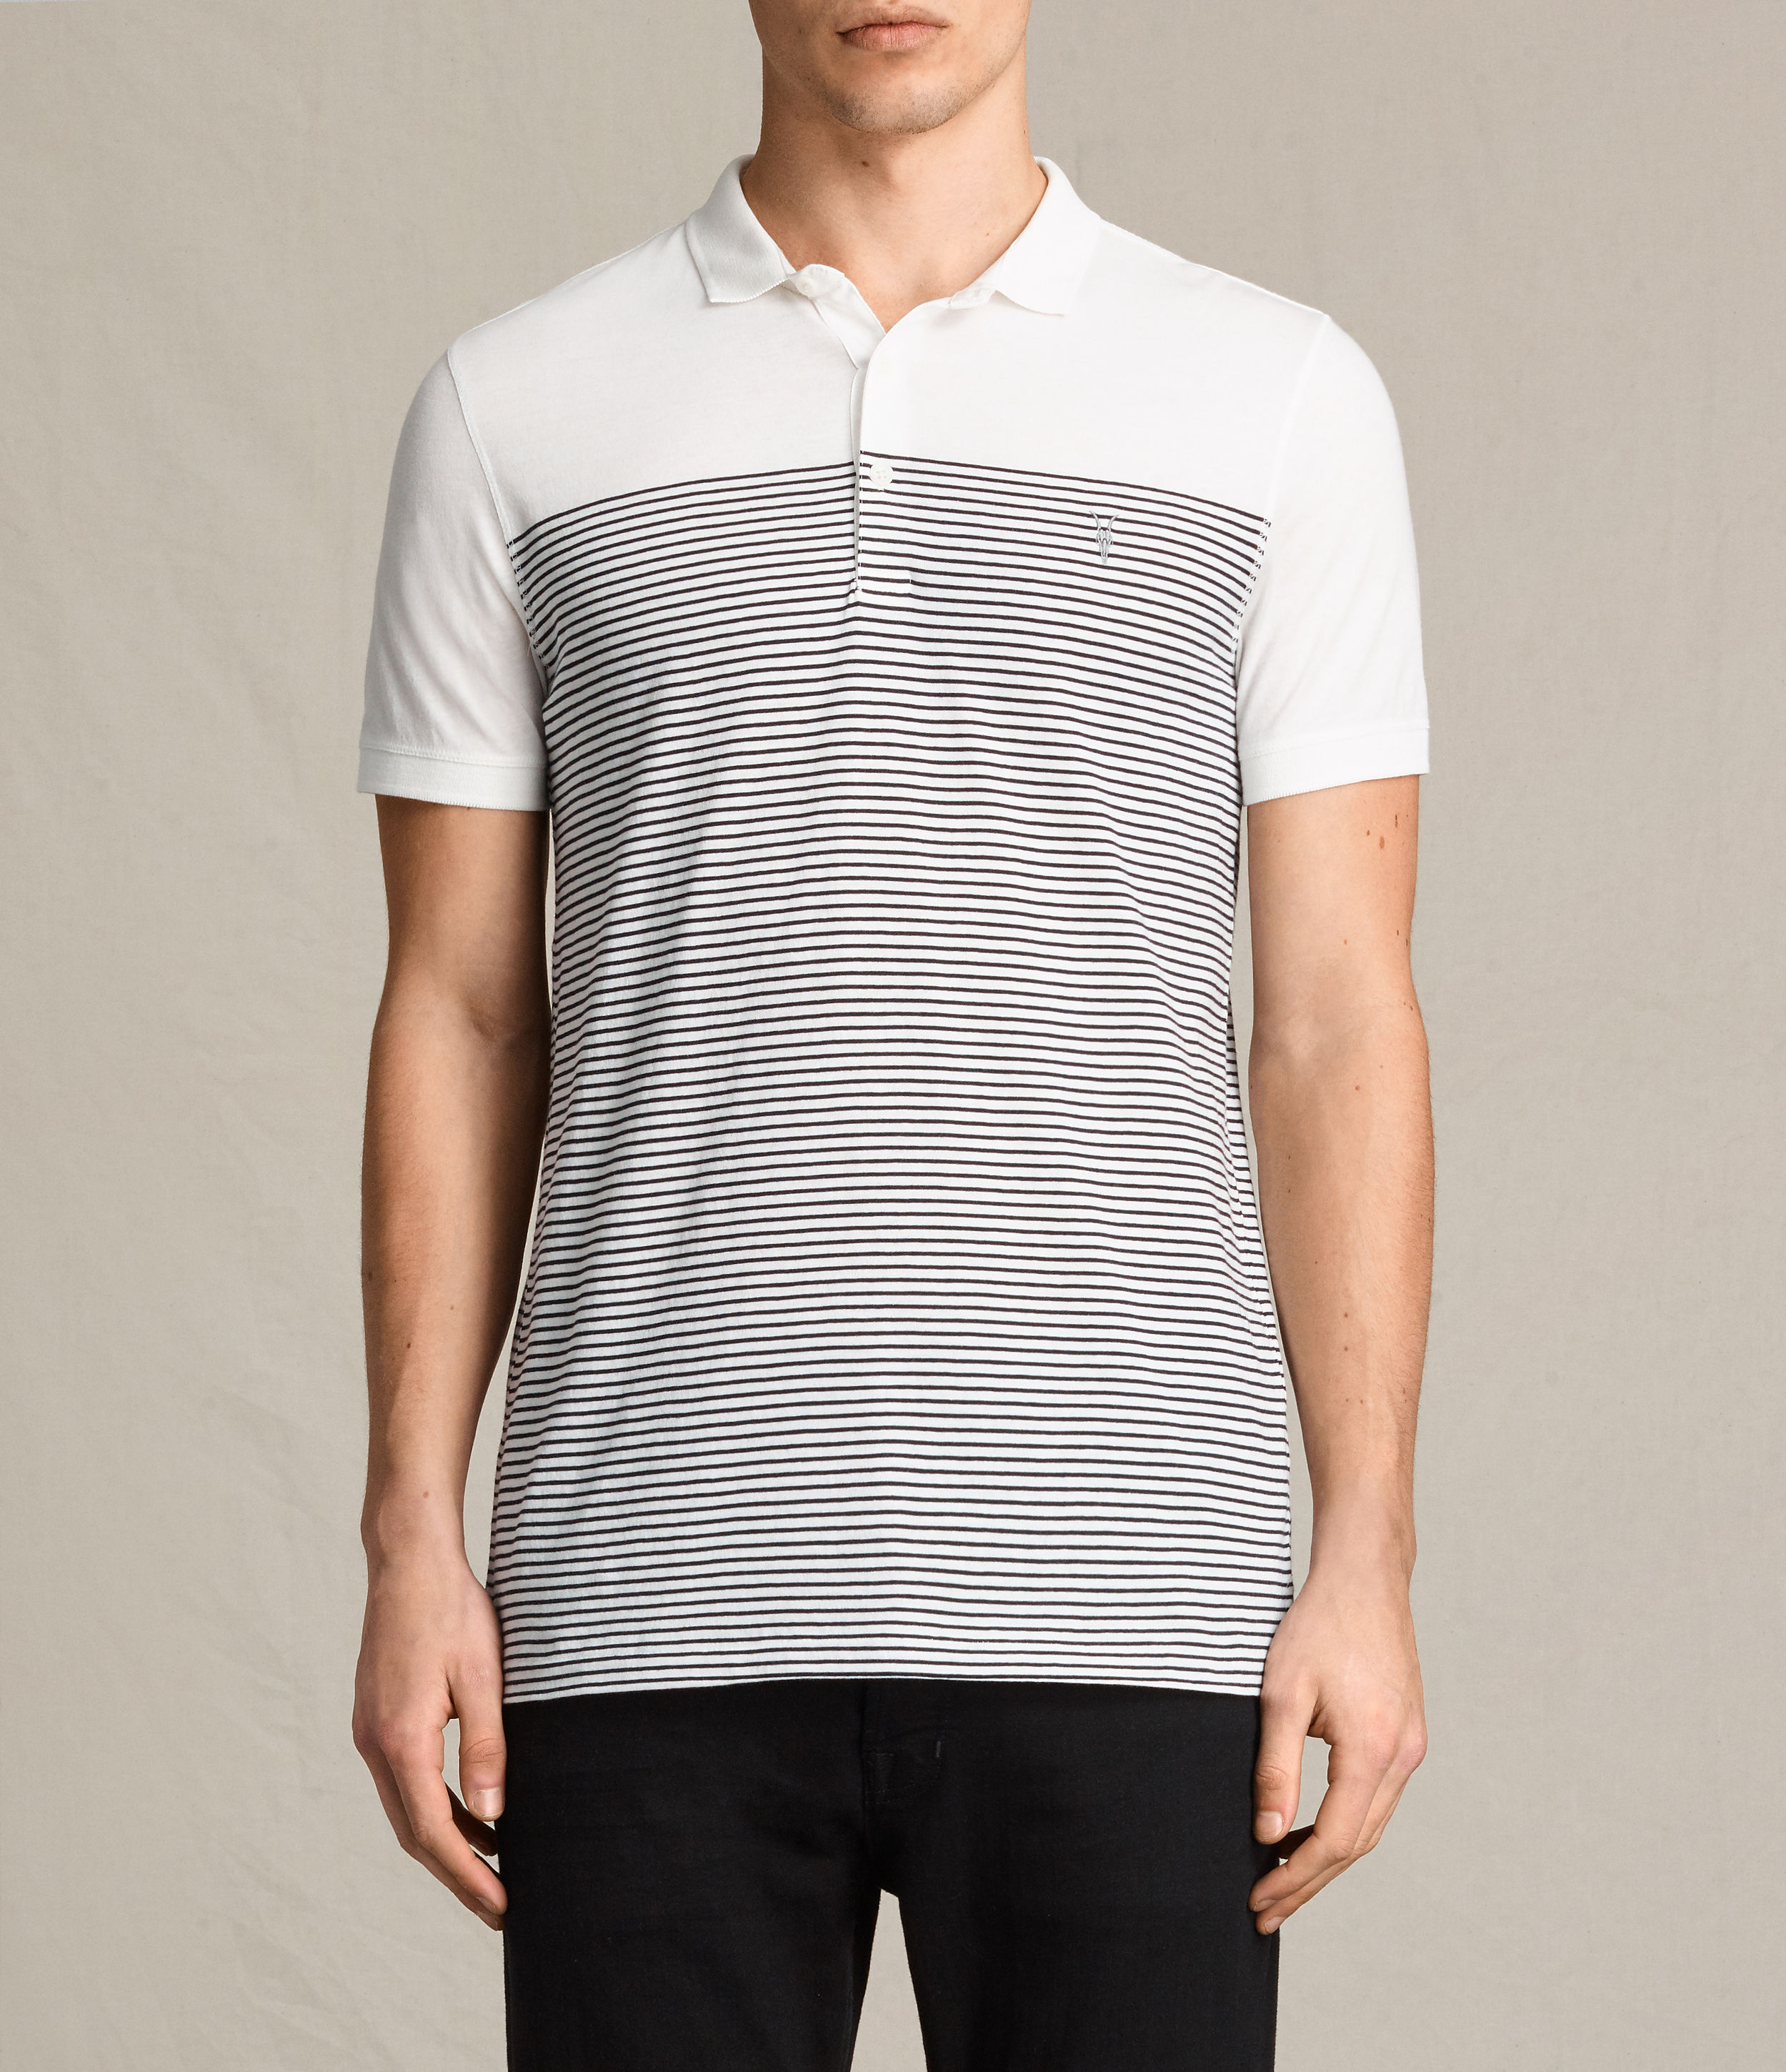 AllSaints Chalk White/Ink Breton Tonic Polo Shirt